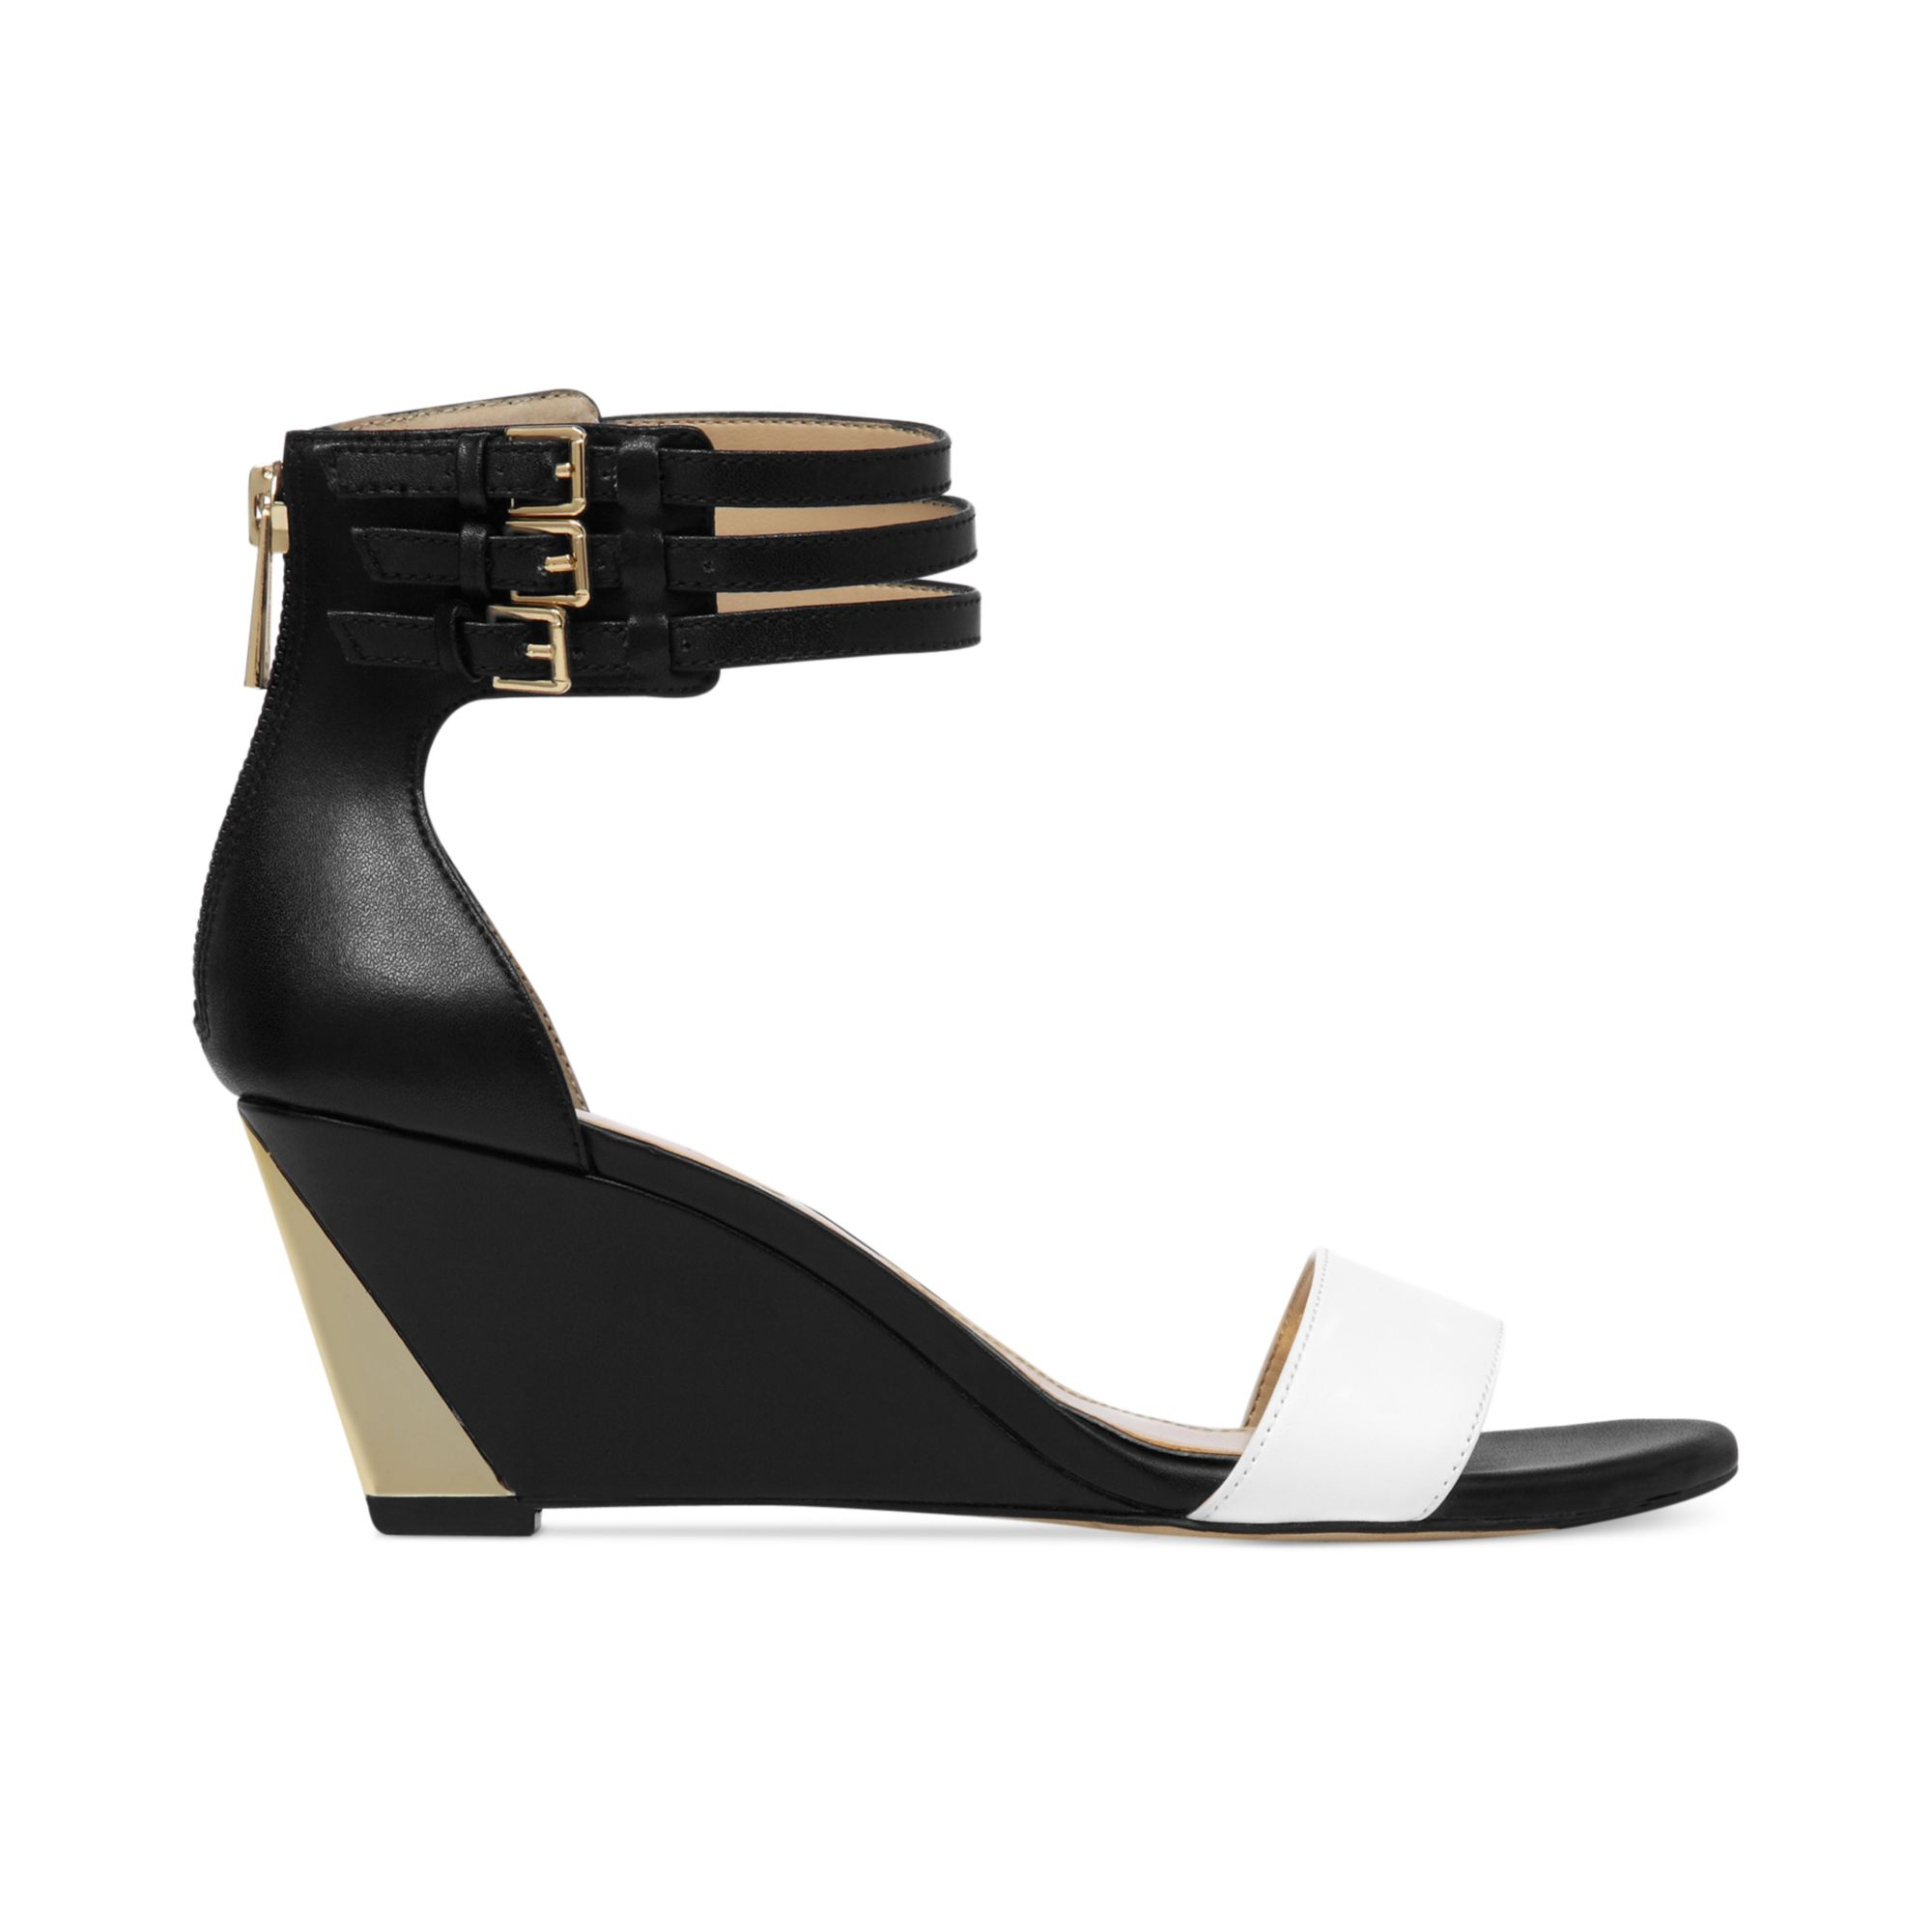 Black Wedge with Ankle Strap Sandals